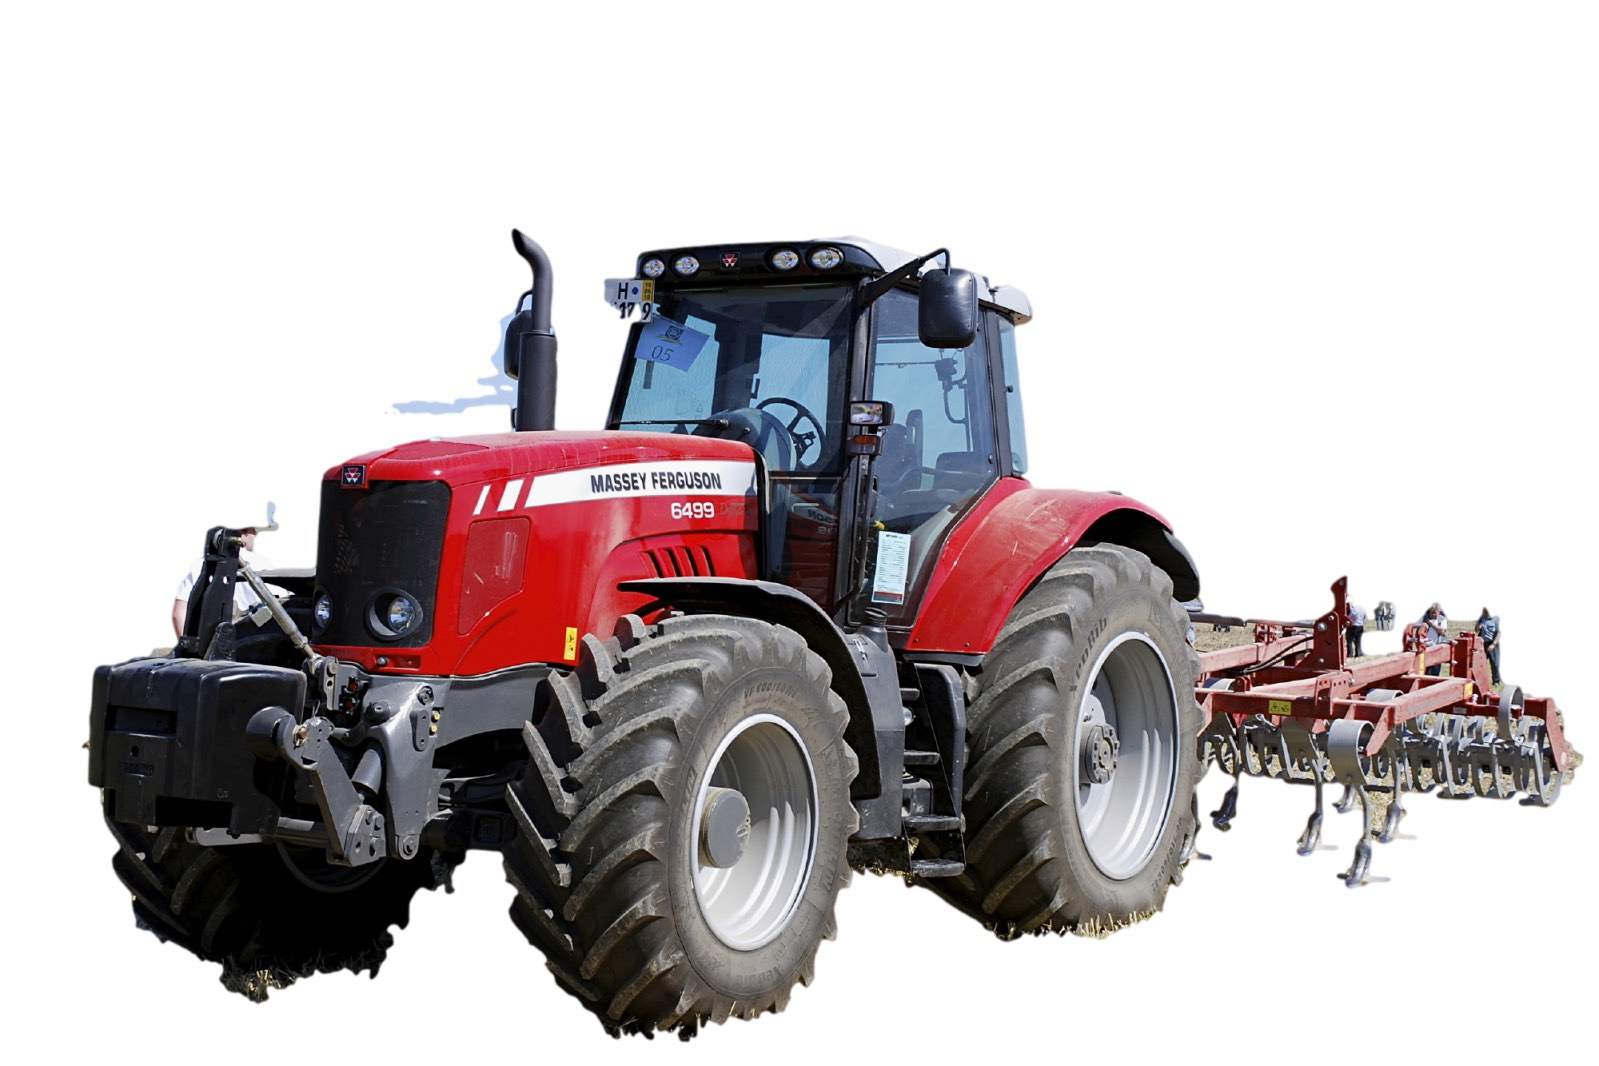 Pages from AGCO-Massey-Ferguson Tractor Series 6400 (Model MF  6445-6455-6460-6465-6470-6475-6480-6485-6490-6495-6497-6499) Workshop  Service Manual